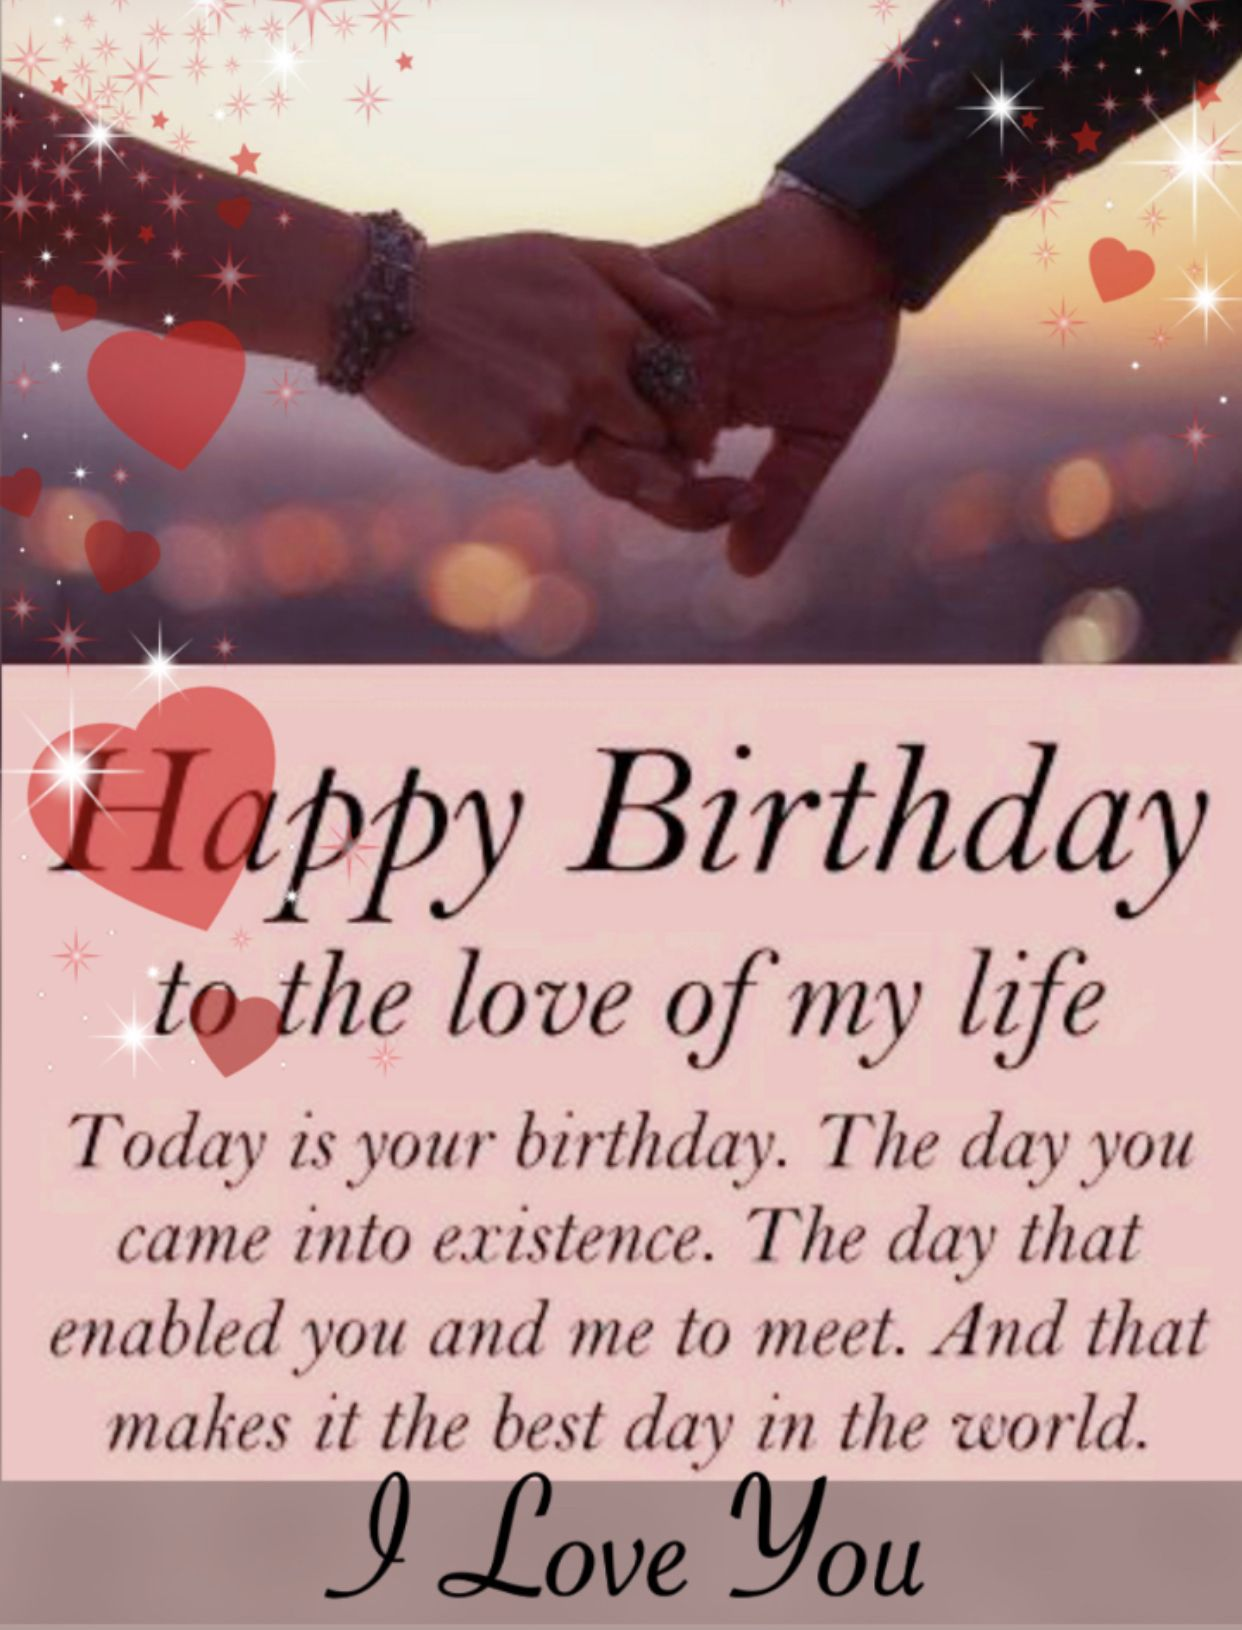 Pin By Space Dreamer On Birthday Happy Birthday Husband Quotes Birthday Wishes For Love Birthday Message For Wife